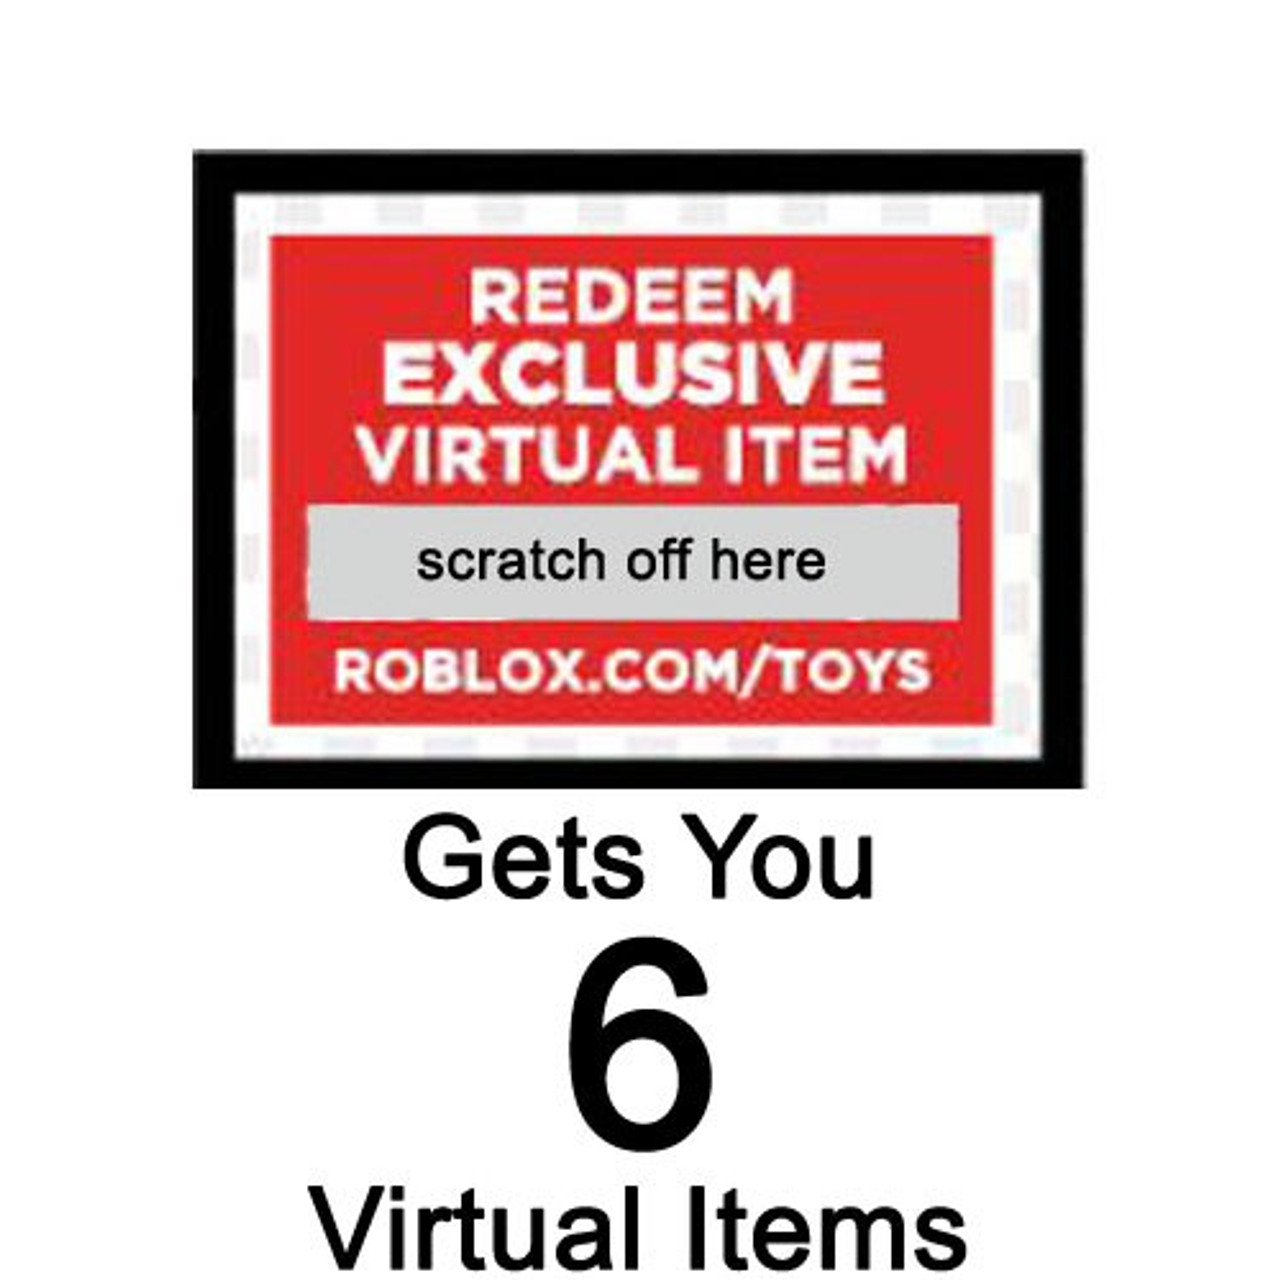 Roblox Redeem 6 Virtual Items Online Code 1 Code Gets You ...